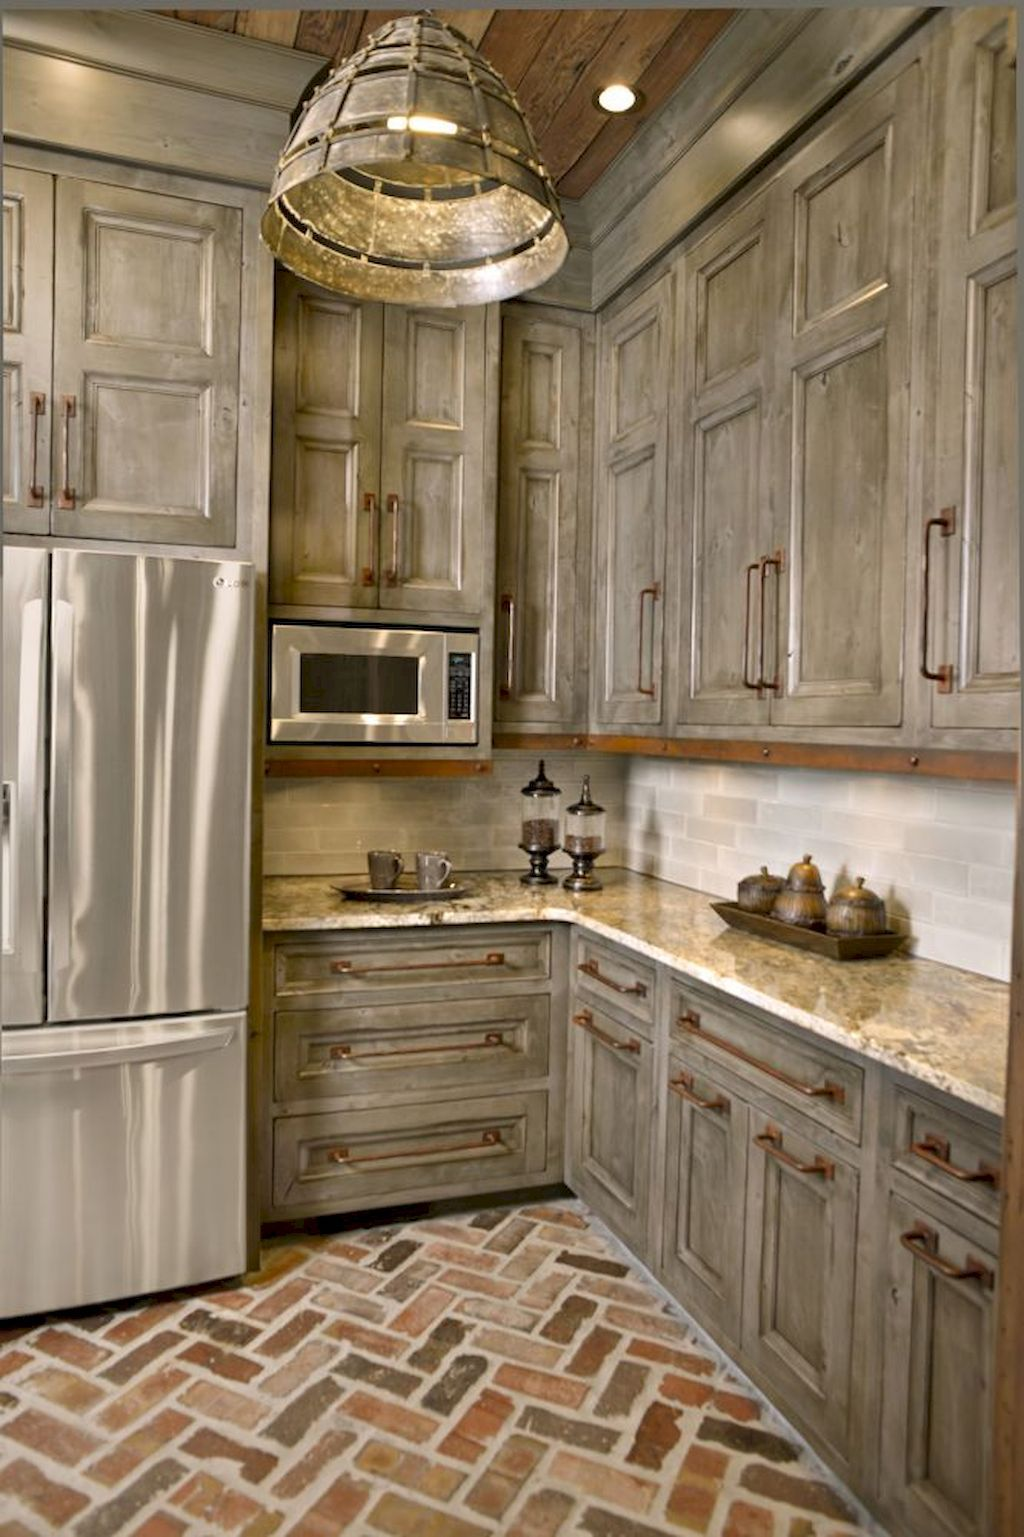 awesome 90 rustic kitchen cabinets farmhouse style ideas https livingmarch com 90 rustic on farmhouse kitchen cabinets id=88873